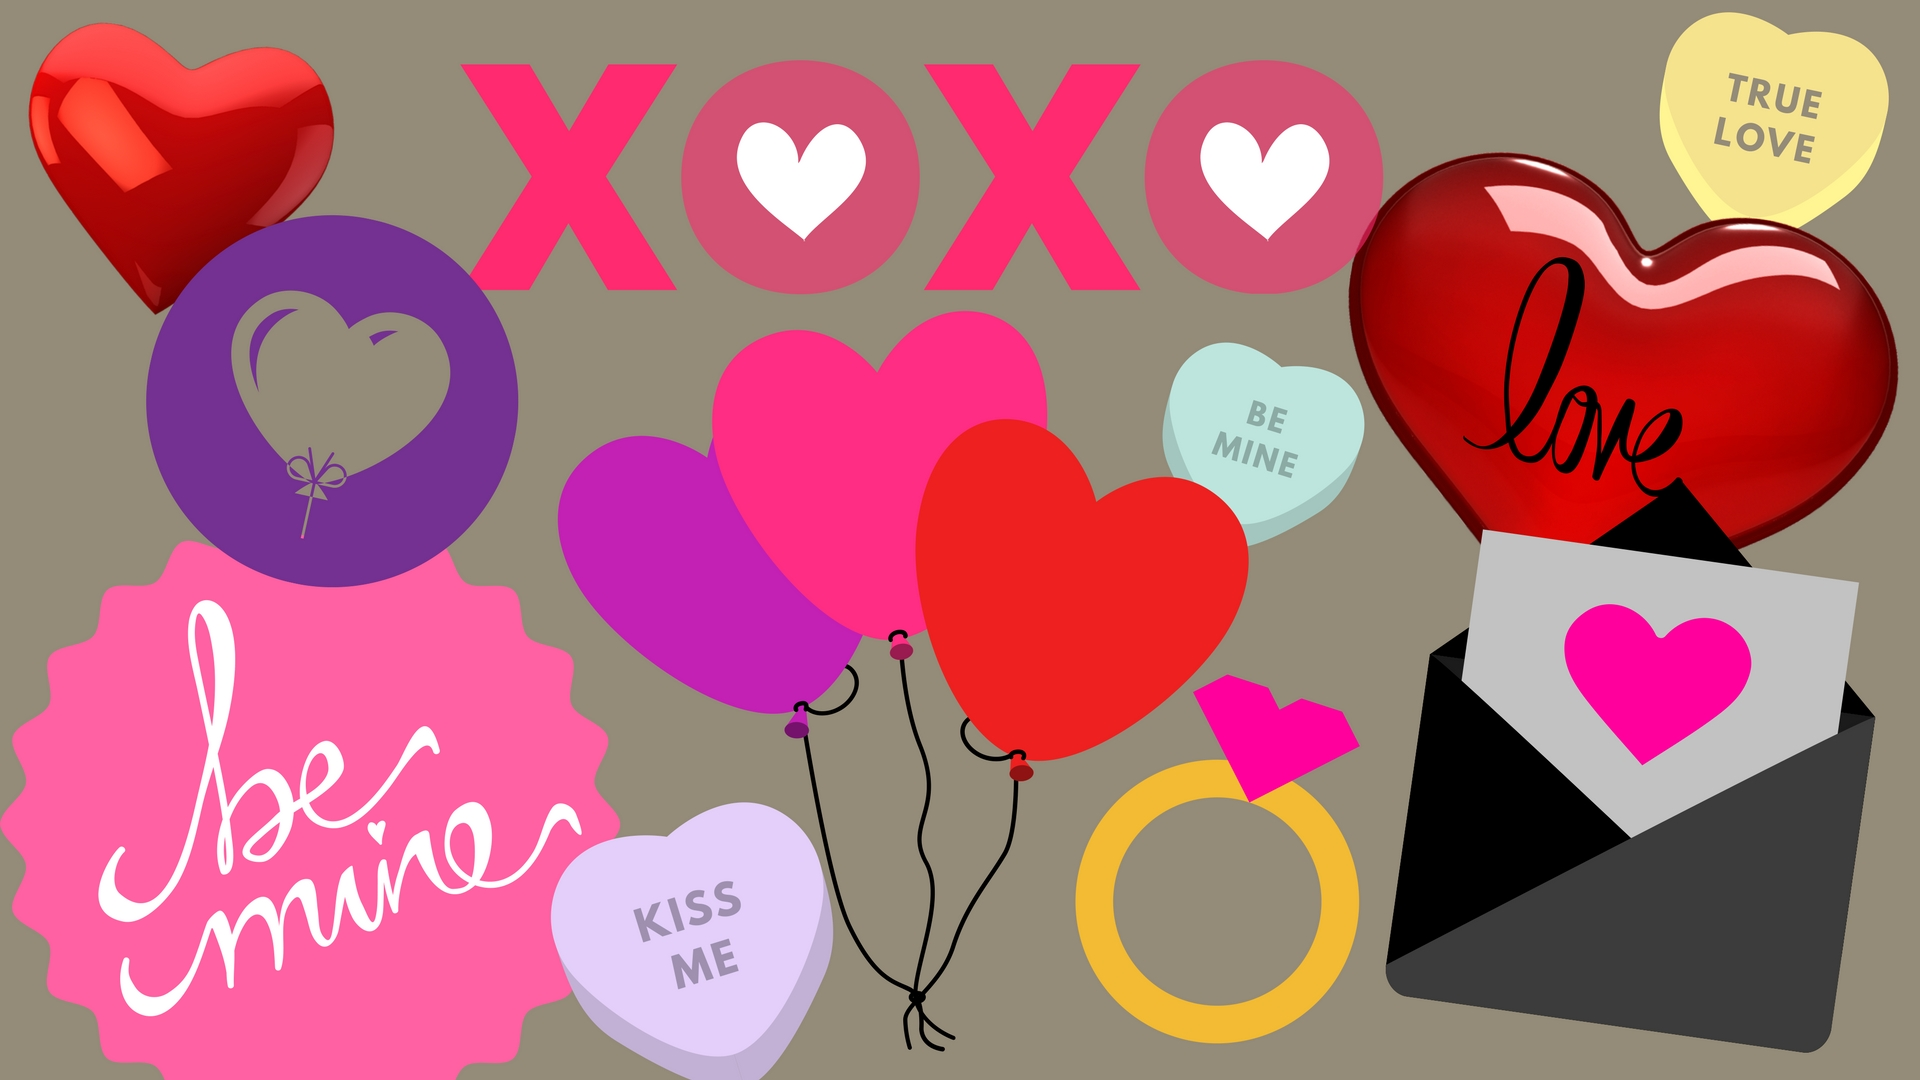 beautiful flowers for valentines day card message ideas 2 - Valentines Card Messages